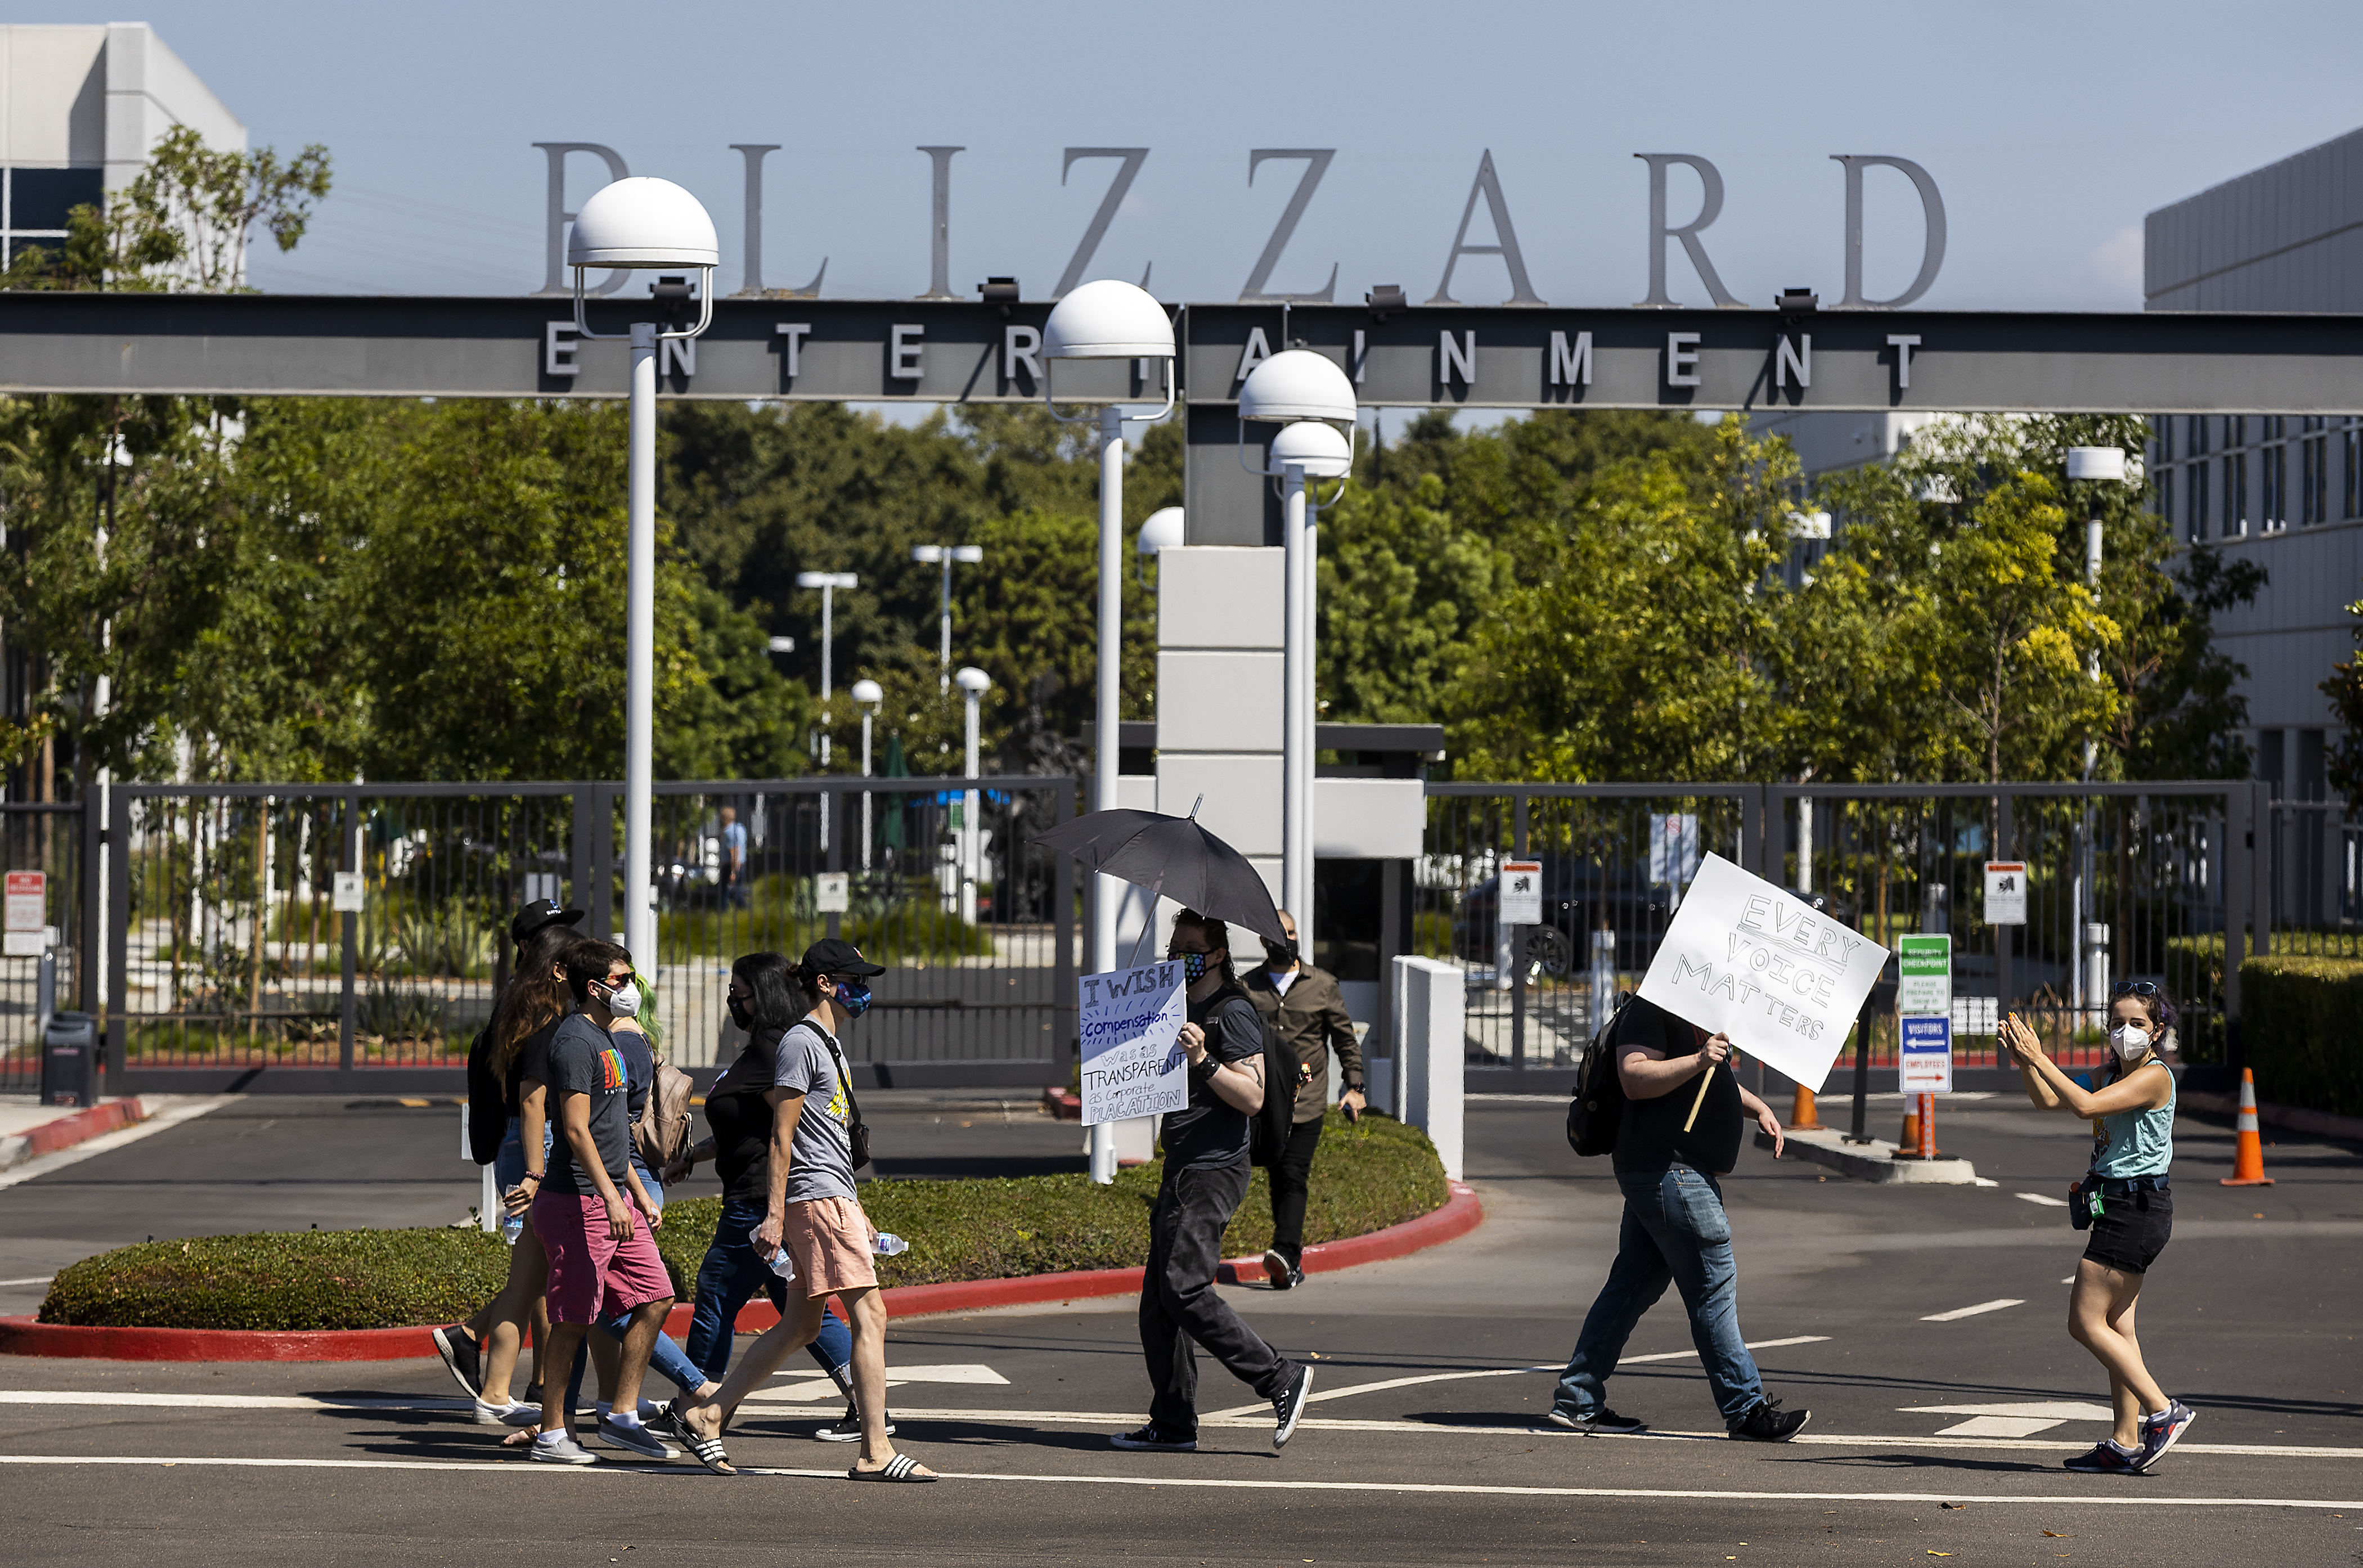 Activision Blizzard employees stage a walkout in the response from company leadership to a lawsuit highlighting alleged harassment, inequality